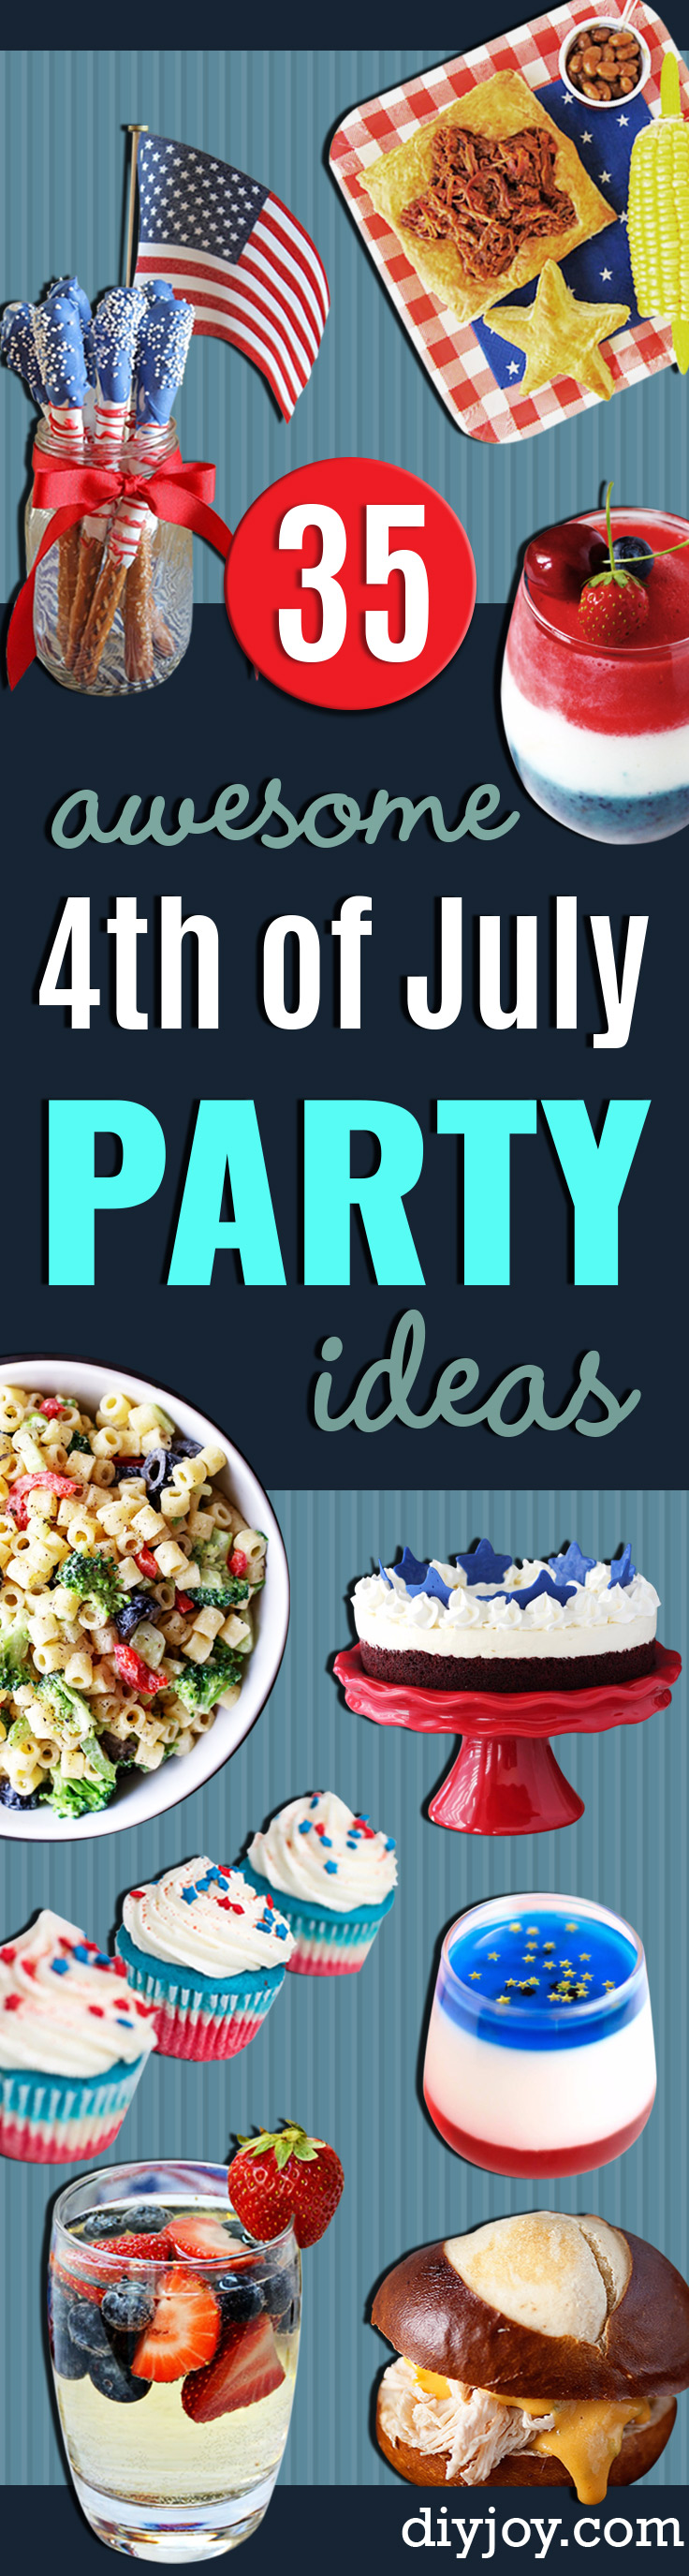 Best Fourth of July Food and Drink Ideas - BBQ on the 4th with these Desserts, Recipes and Ideas for Healthy Appetizers, Party Trays, Easy Meals for a Crowd and Fun Drink Ideas http://diyjoy.com/diy-fourth-of-july-party-ideas